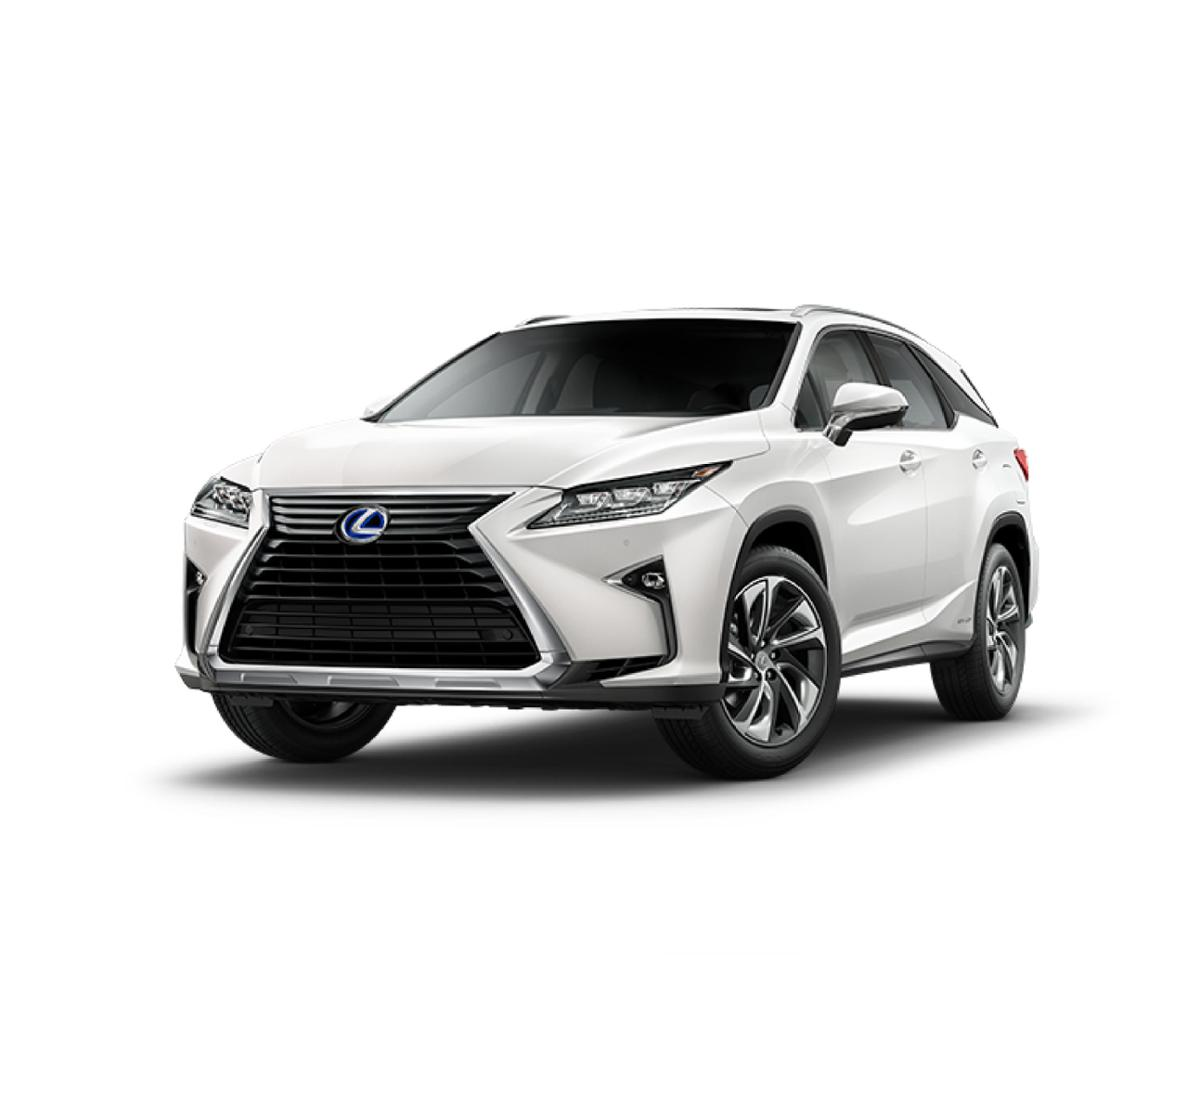 2018 Lexus RX 450hL Vehicle Photo in White Plains, NY 10607